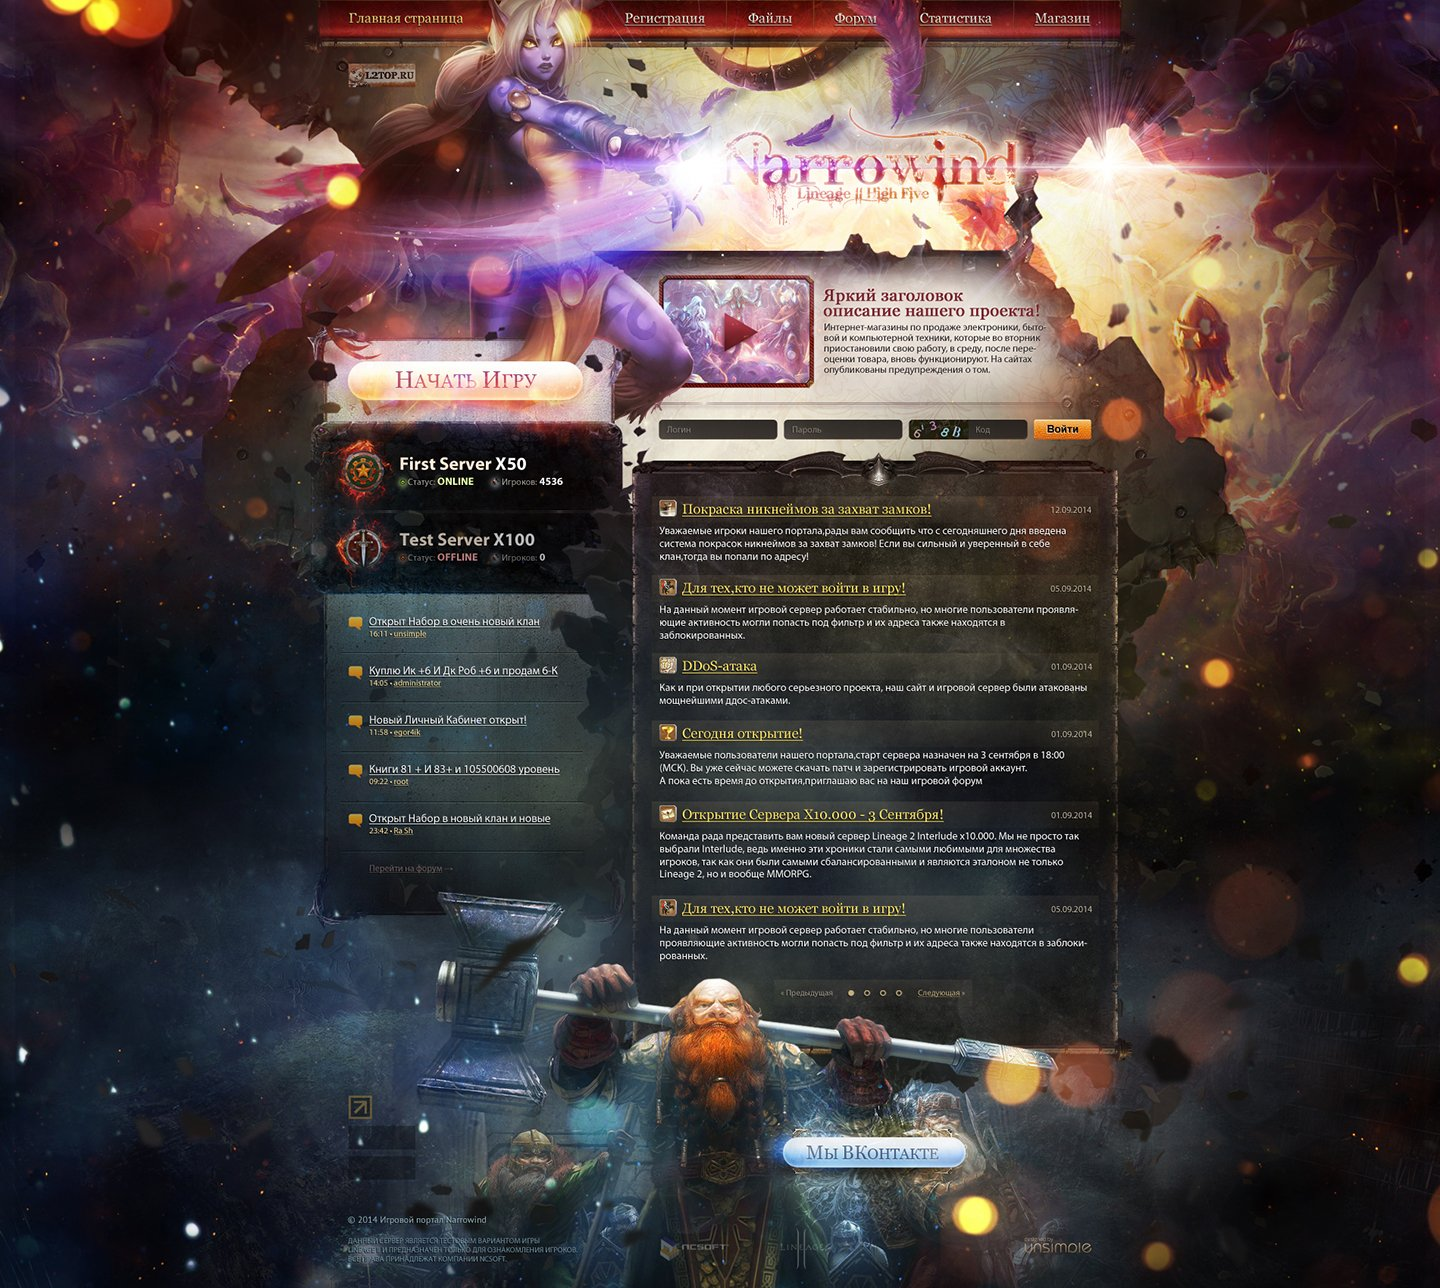 Narrowind > Website design for Lineage 2 private server. Main page